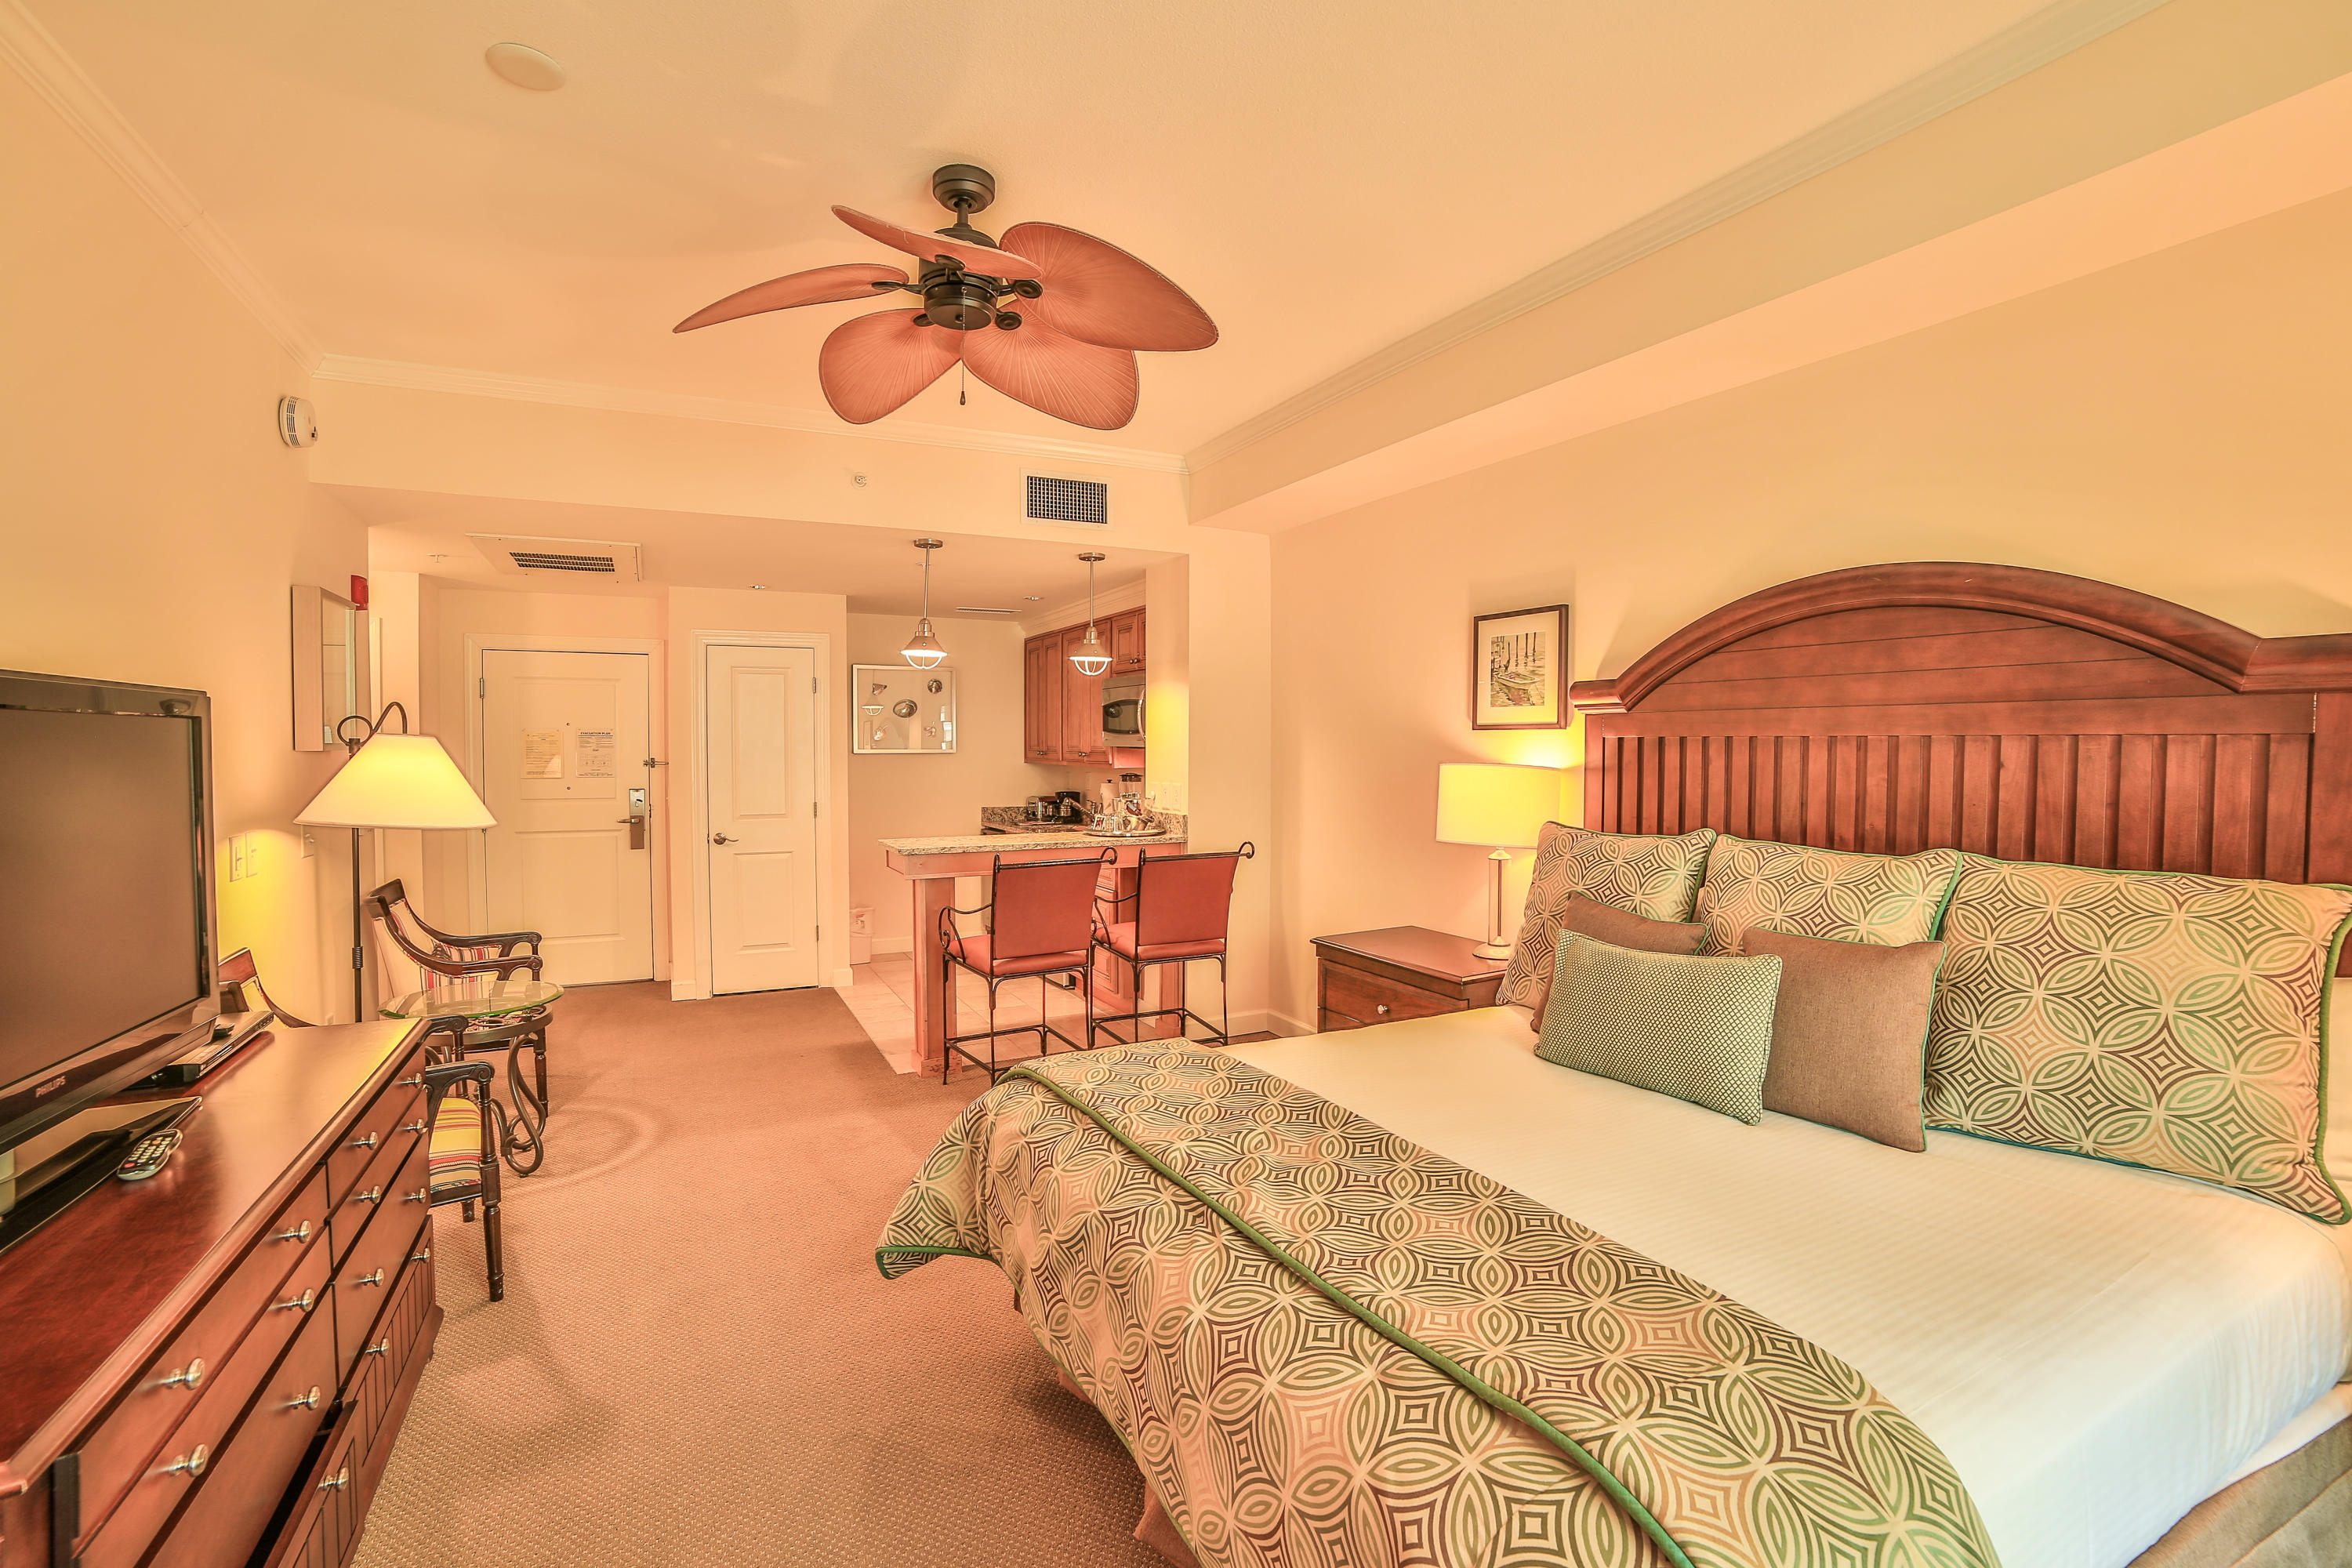 Wild Dunes Homes For Sale - A-408 Village At Wild Dunes, Isle of Palms, SC - 1